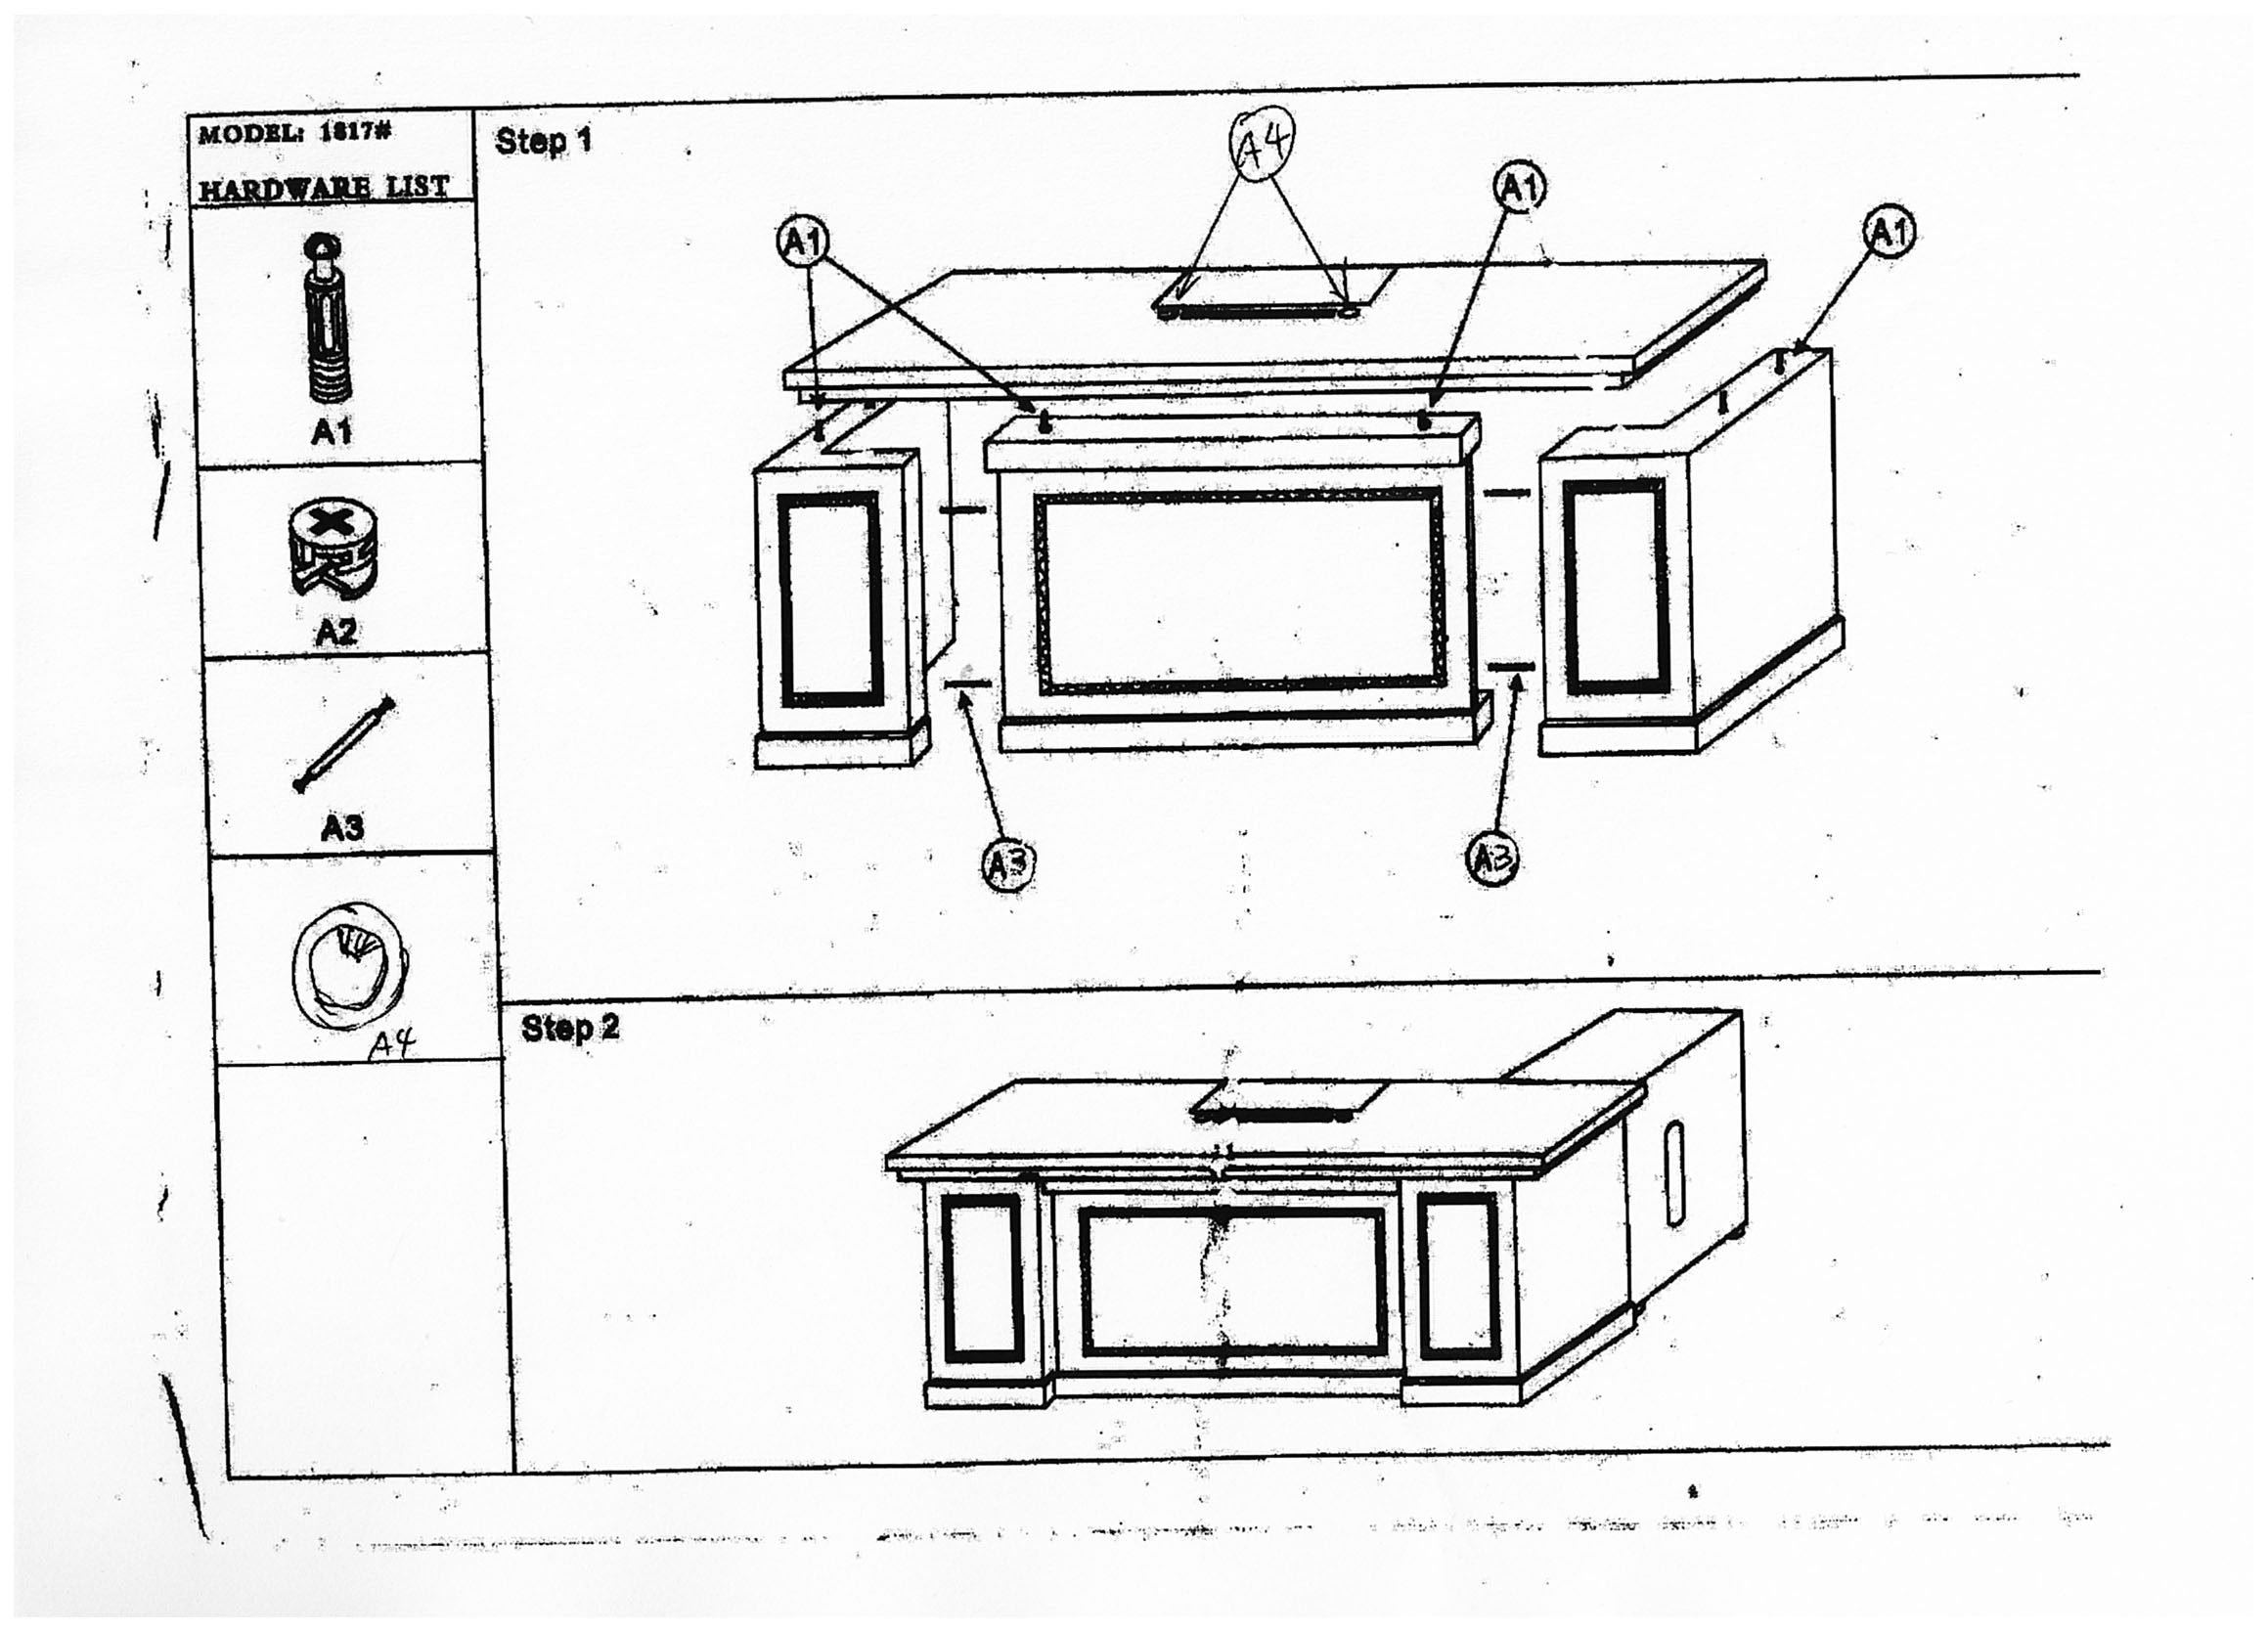 Installation Diagram Office Furniture Melbourne